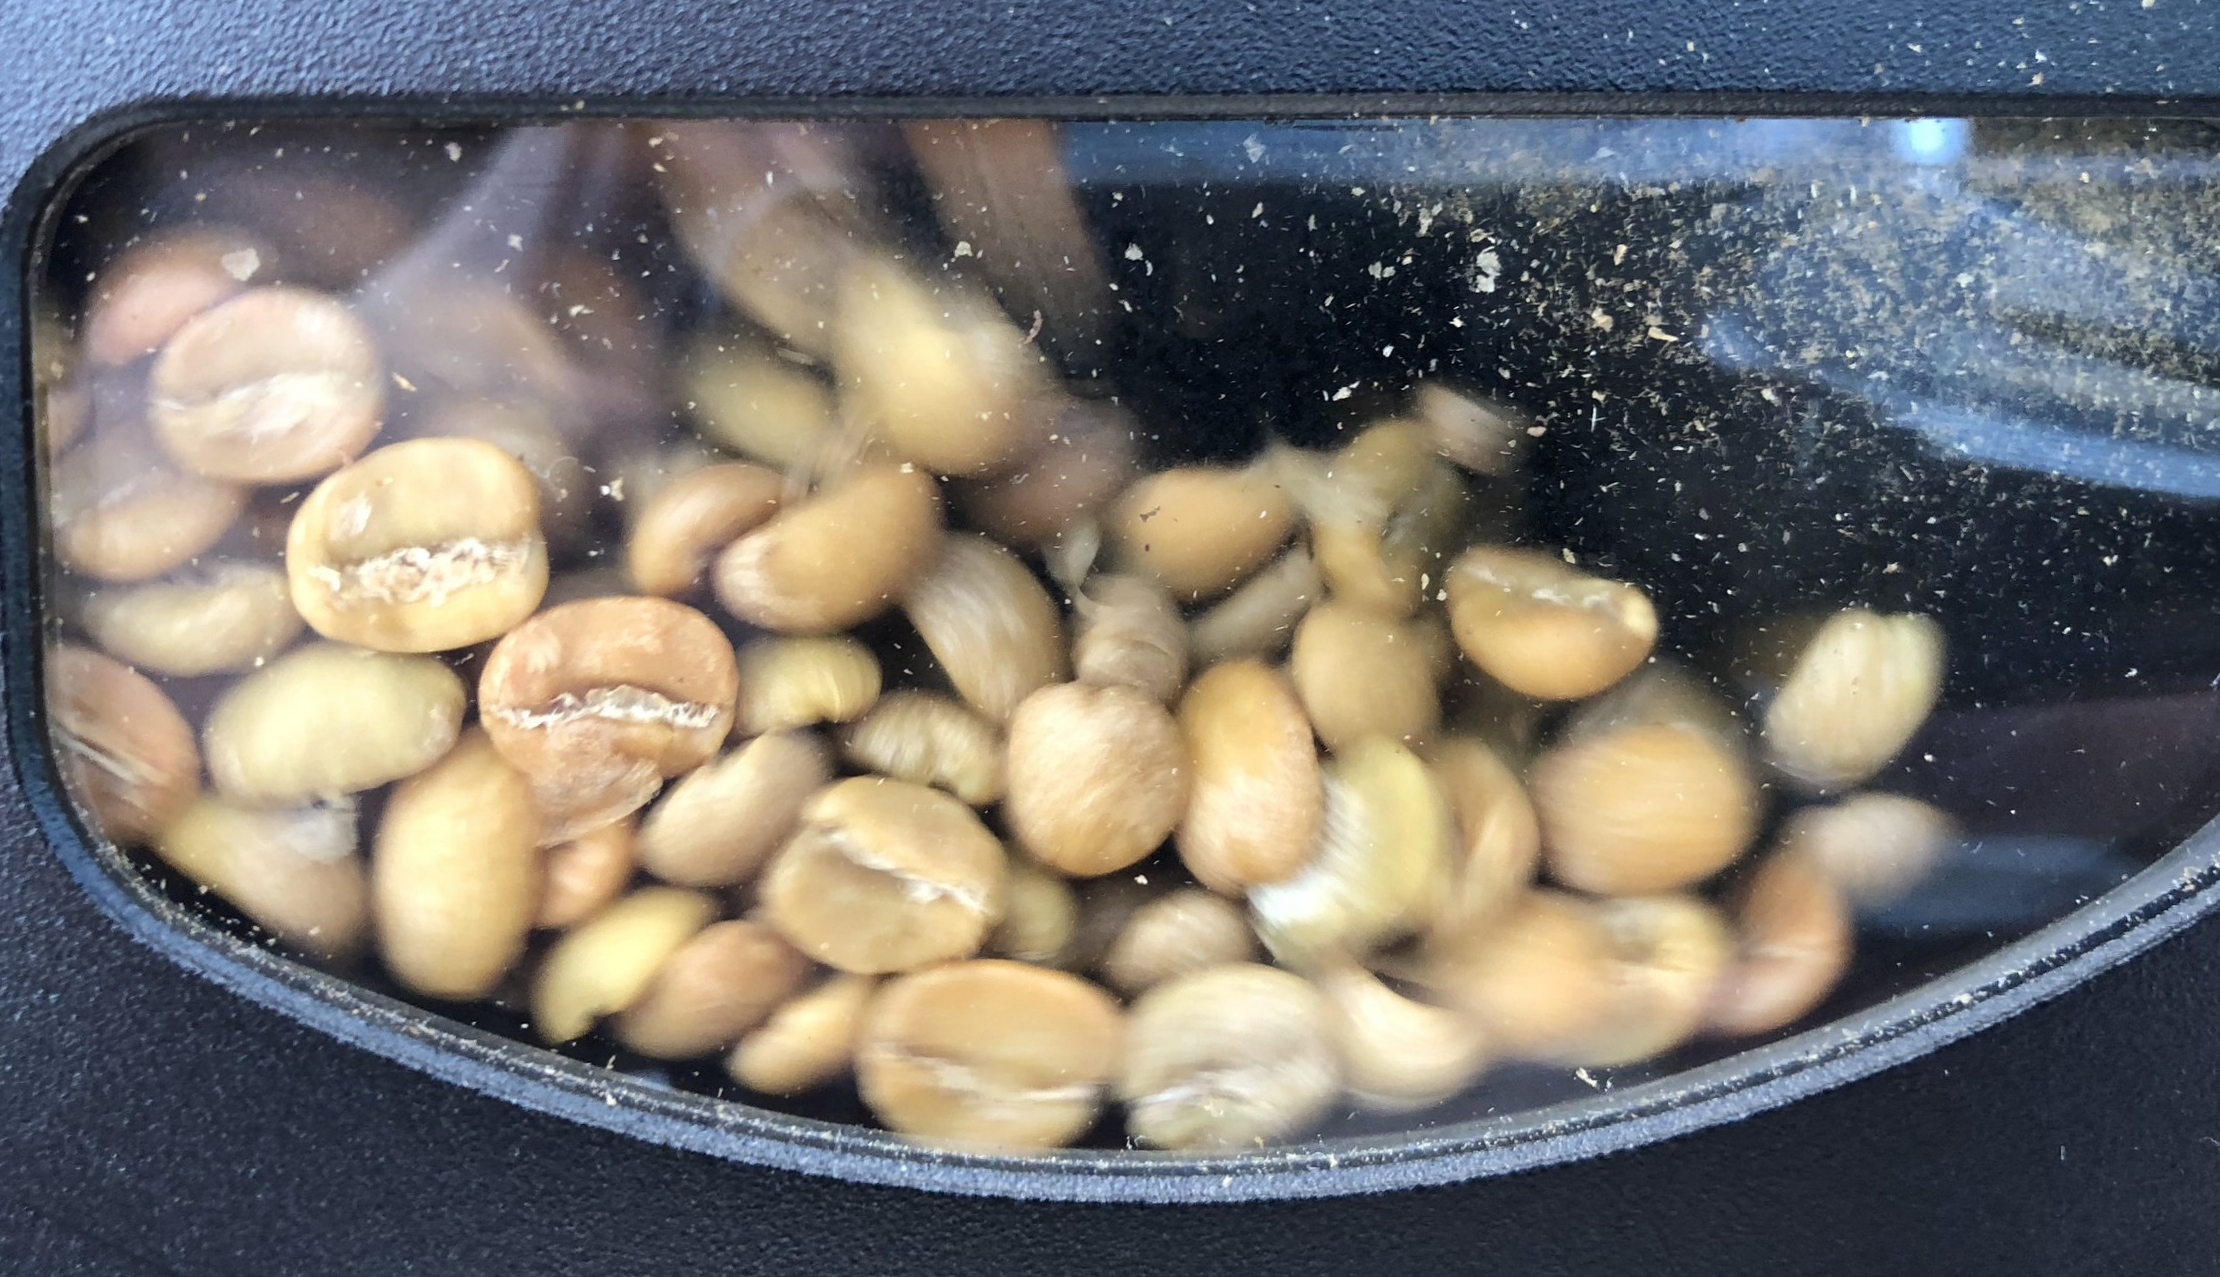 Roasting-Specialty-Coffee-1.jpg